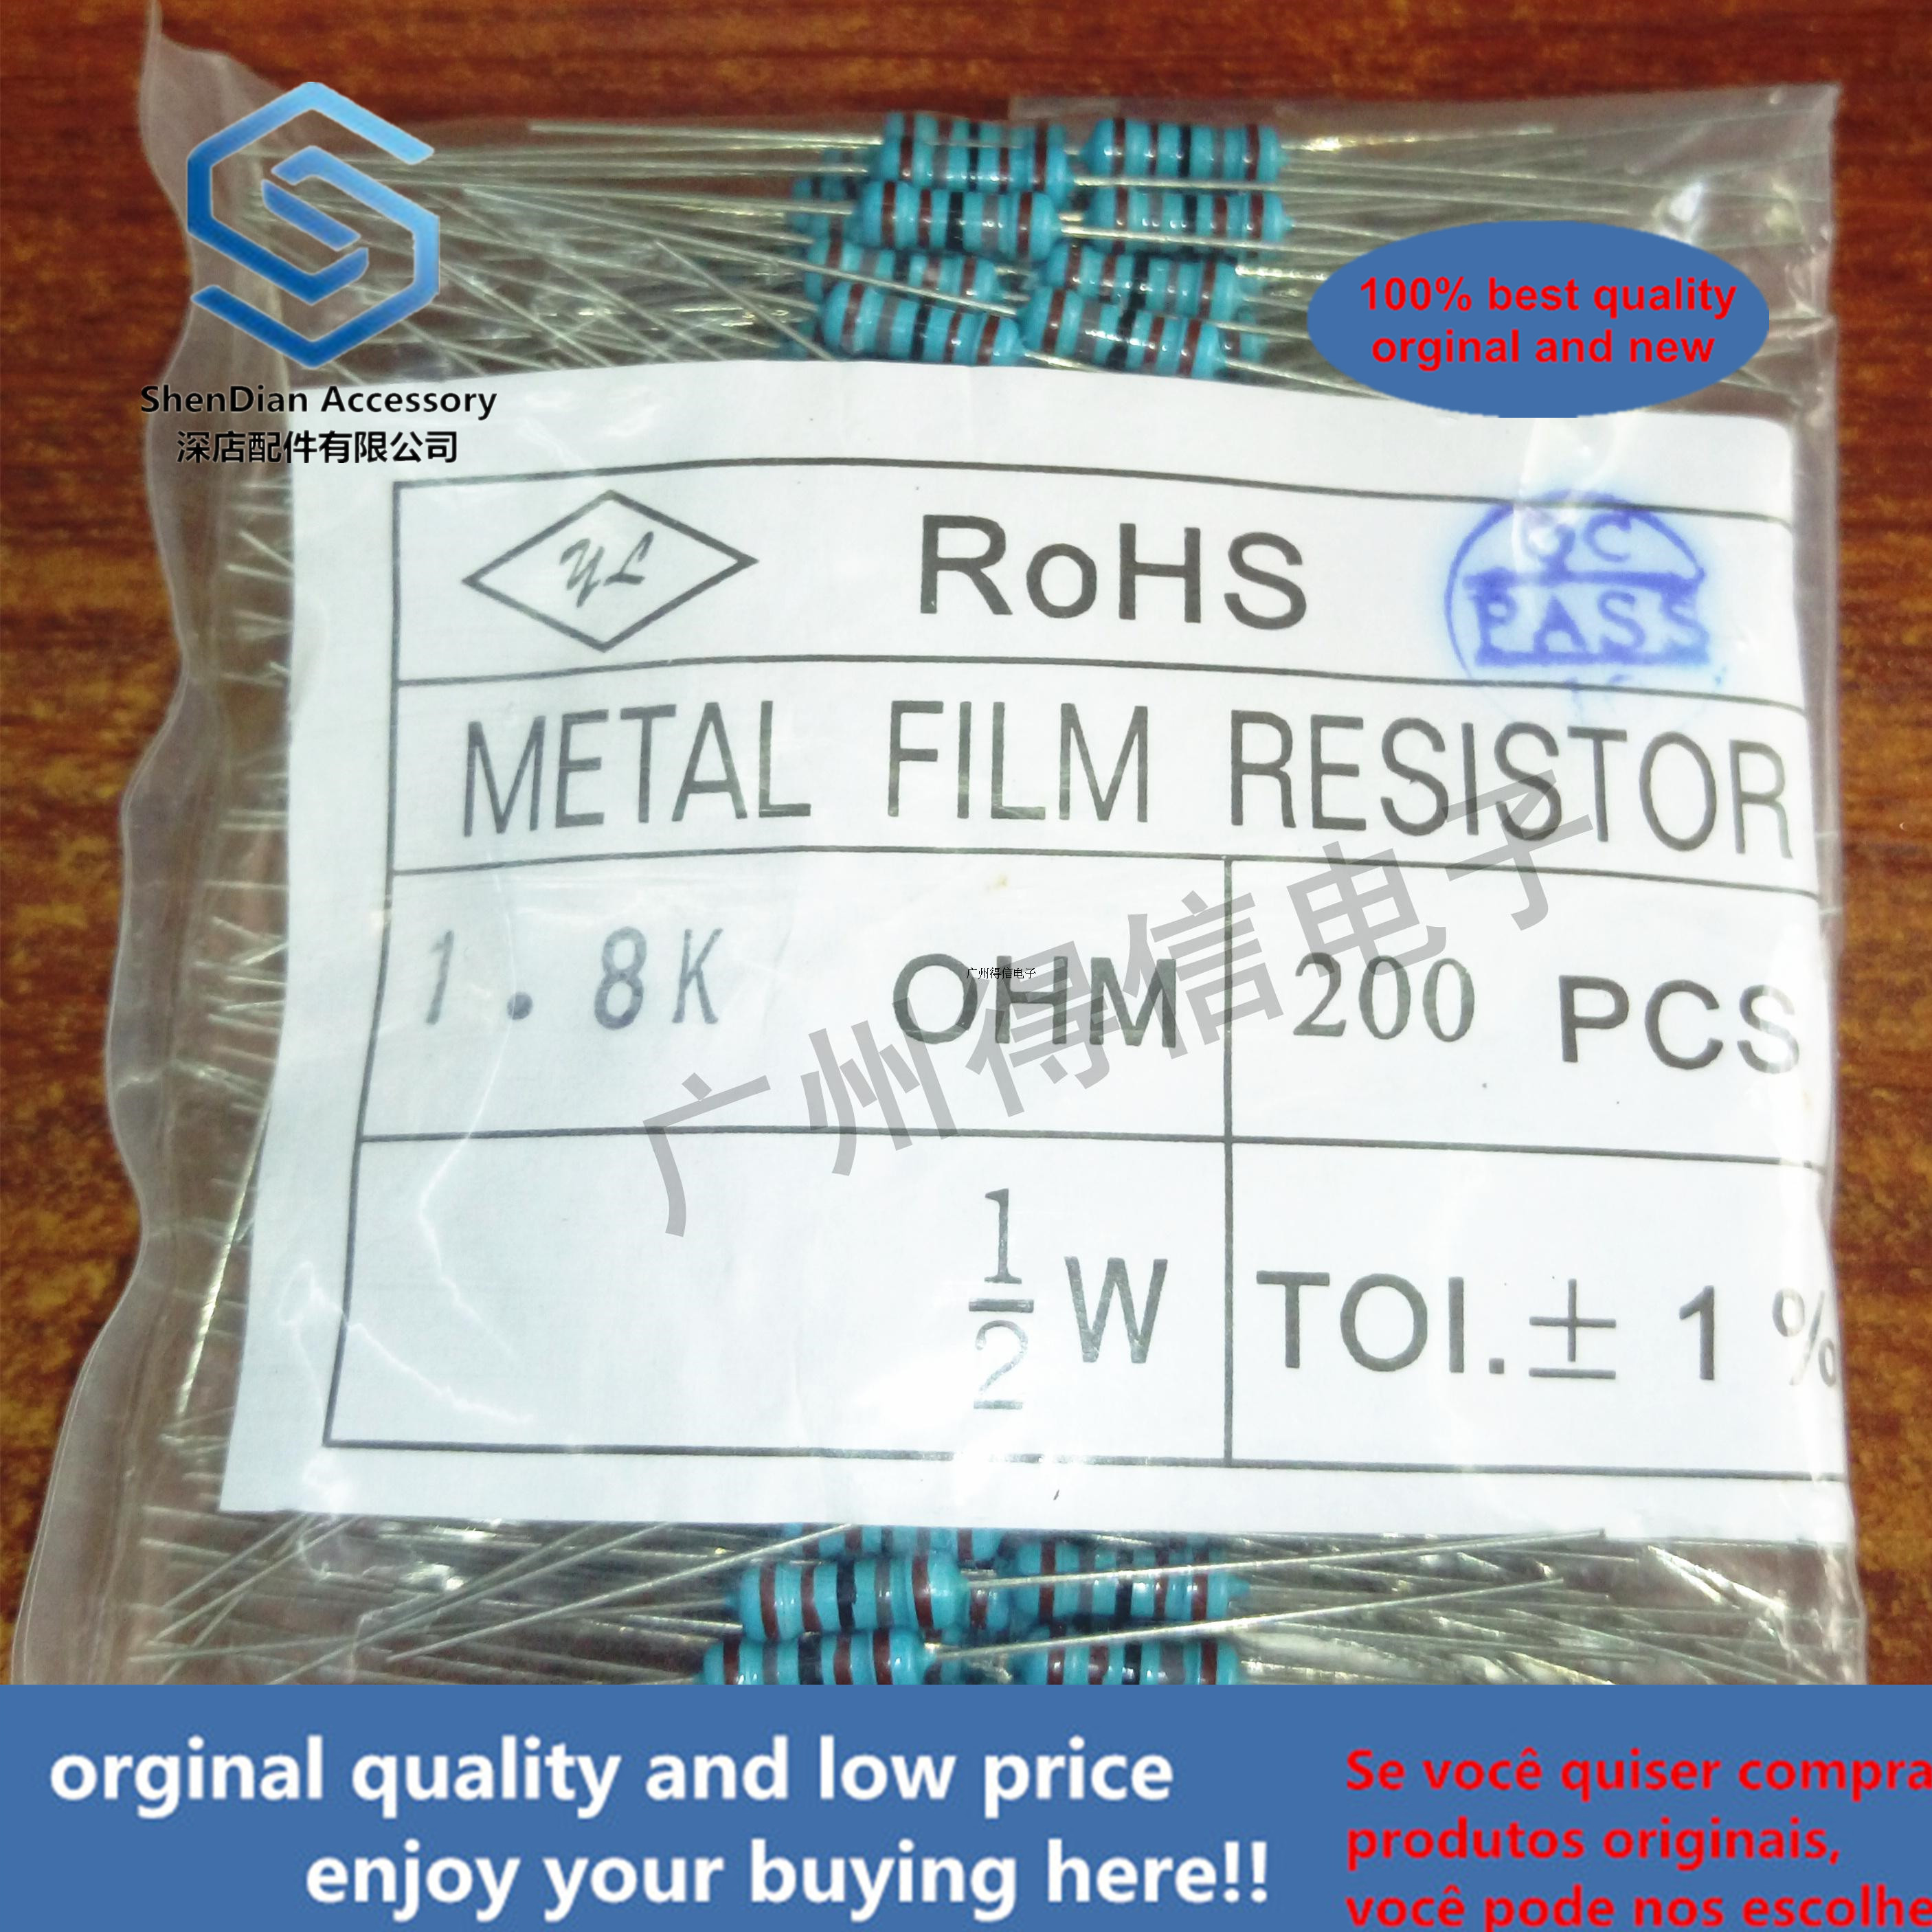 200pcs 1 / 2W 27K 27000 Euro 1% Brand New Metal Film Iron Feet Resistance Bag 200 Pcs Per Pack